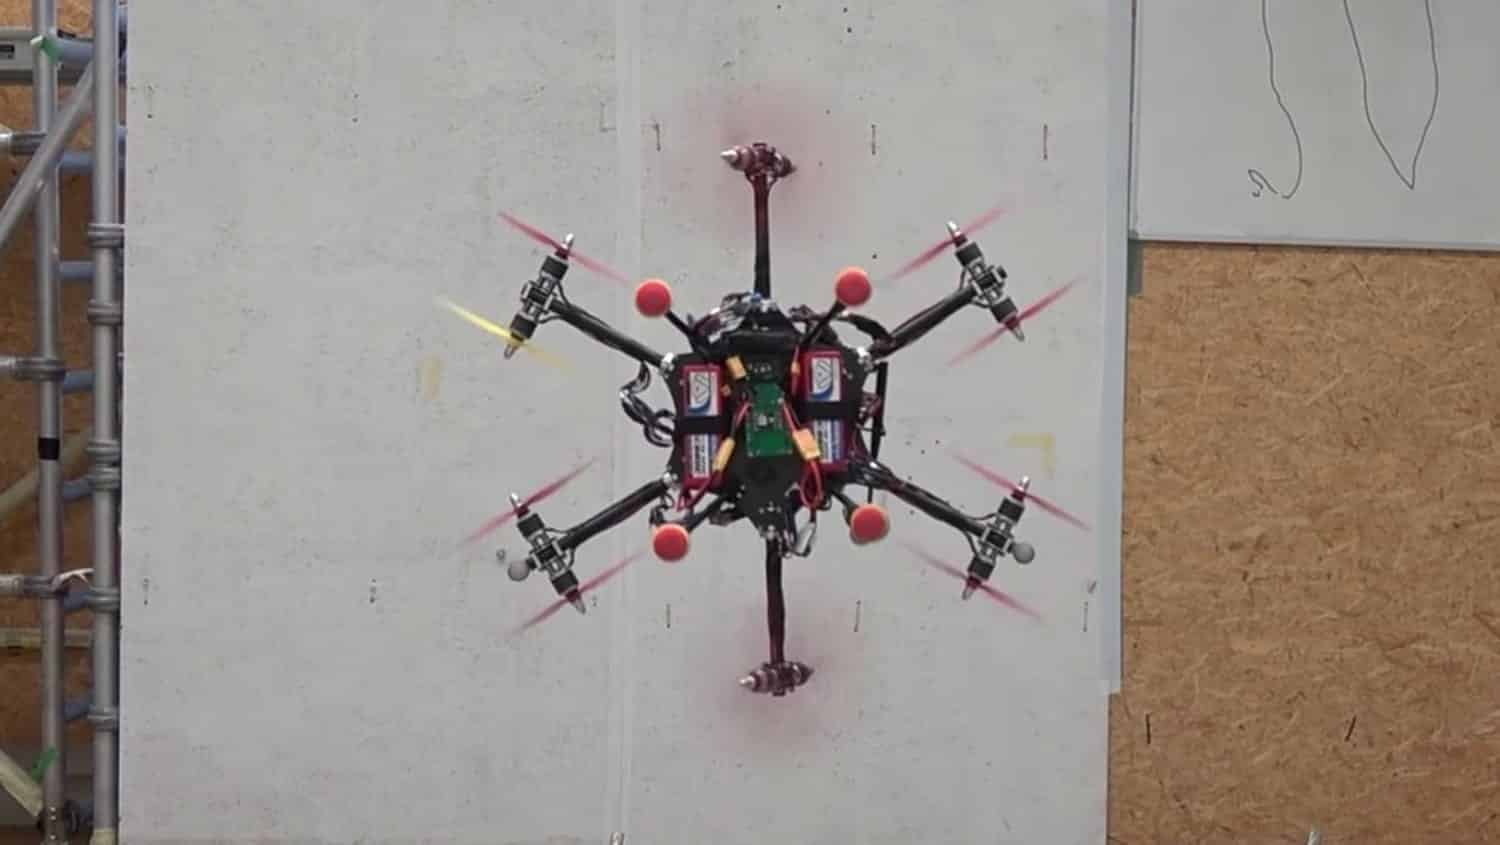 Check out this rotating omnidirectional drone from ETH Zürich